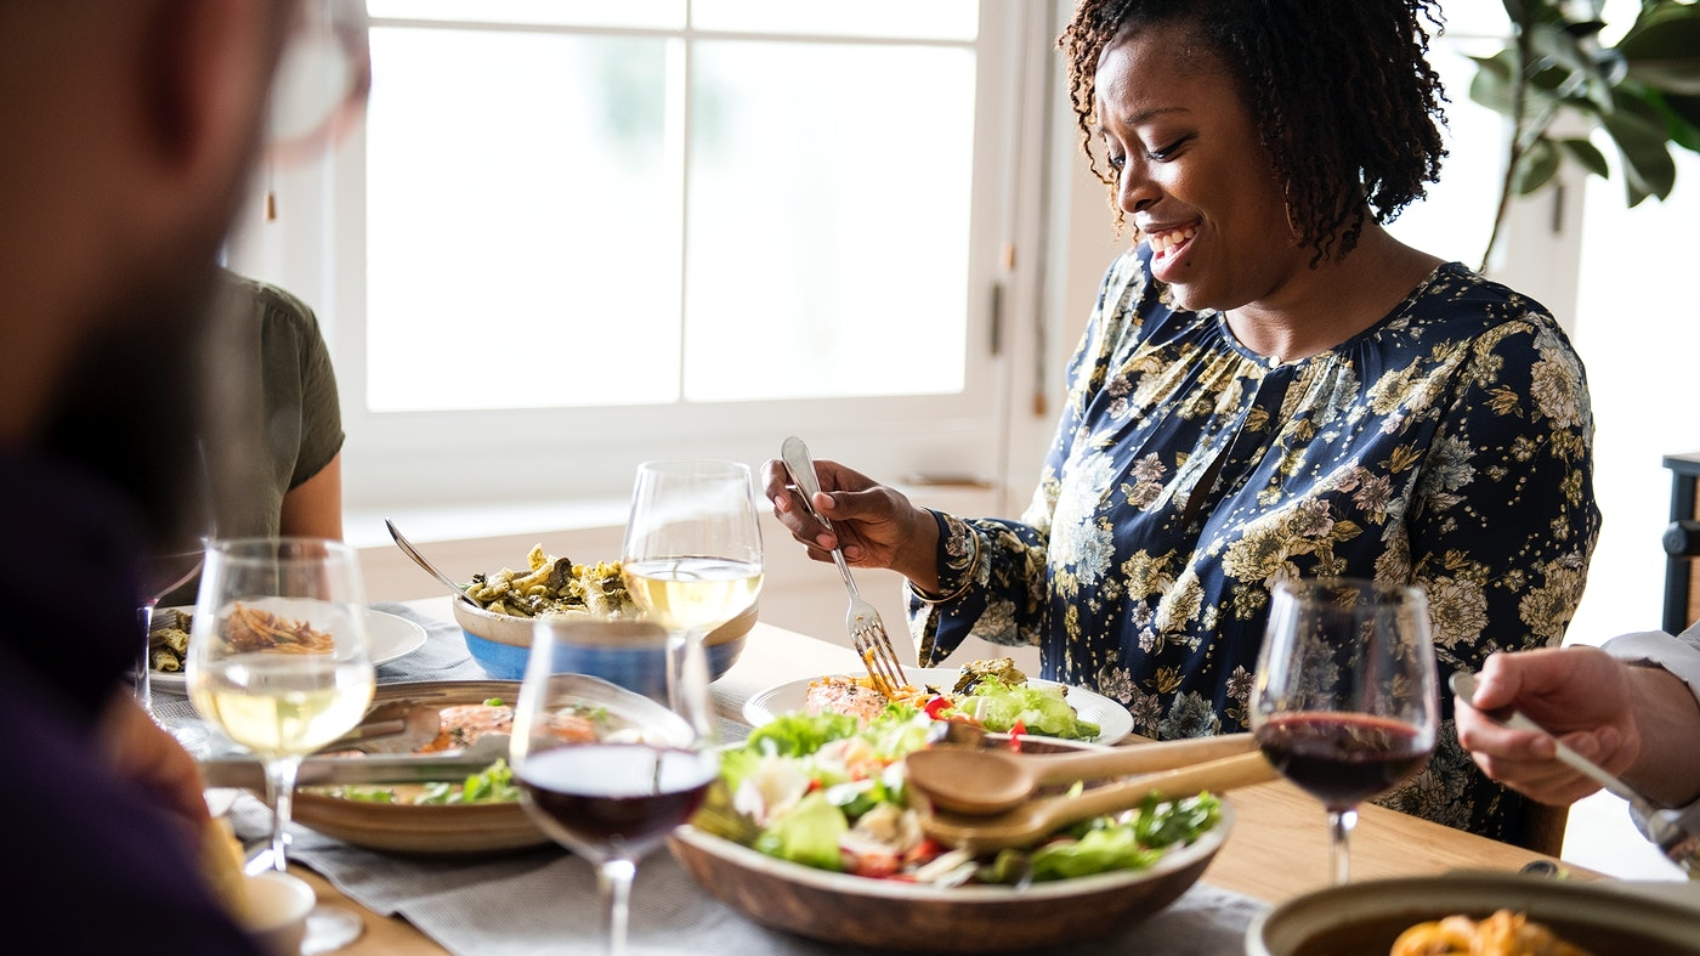 people sitting around a dinner table with the a large salad serving bowl at the center of the table and the focus being on one woman on the right who is picking up food with a fork